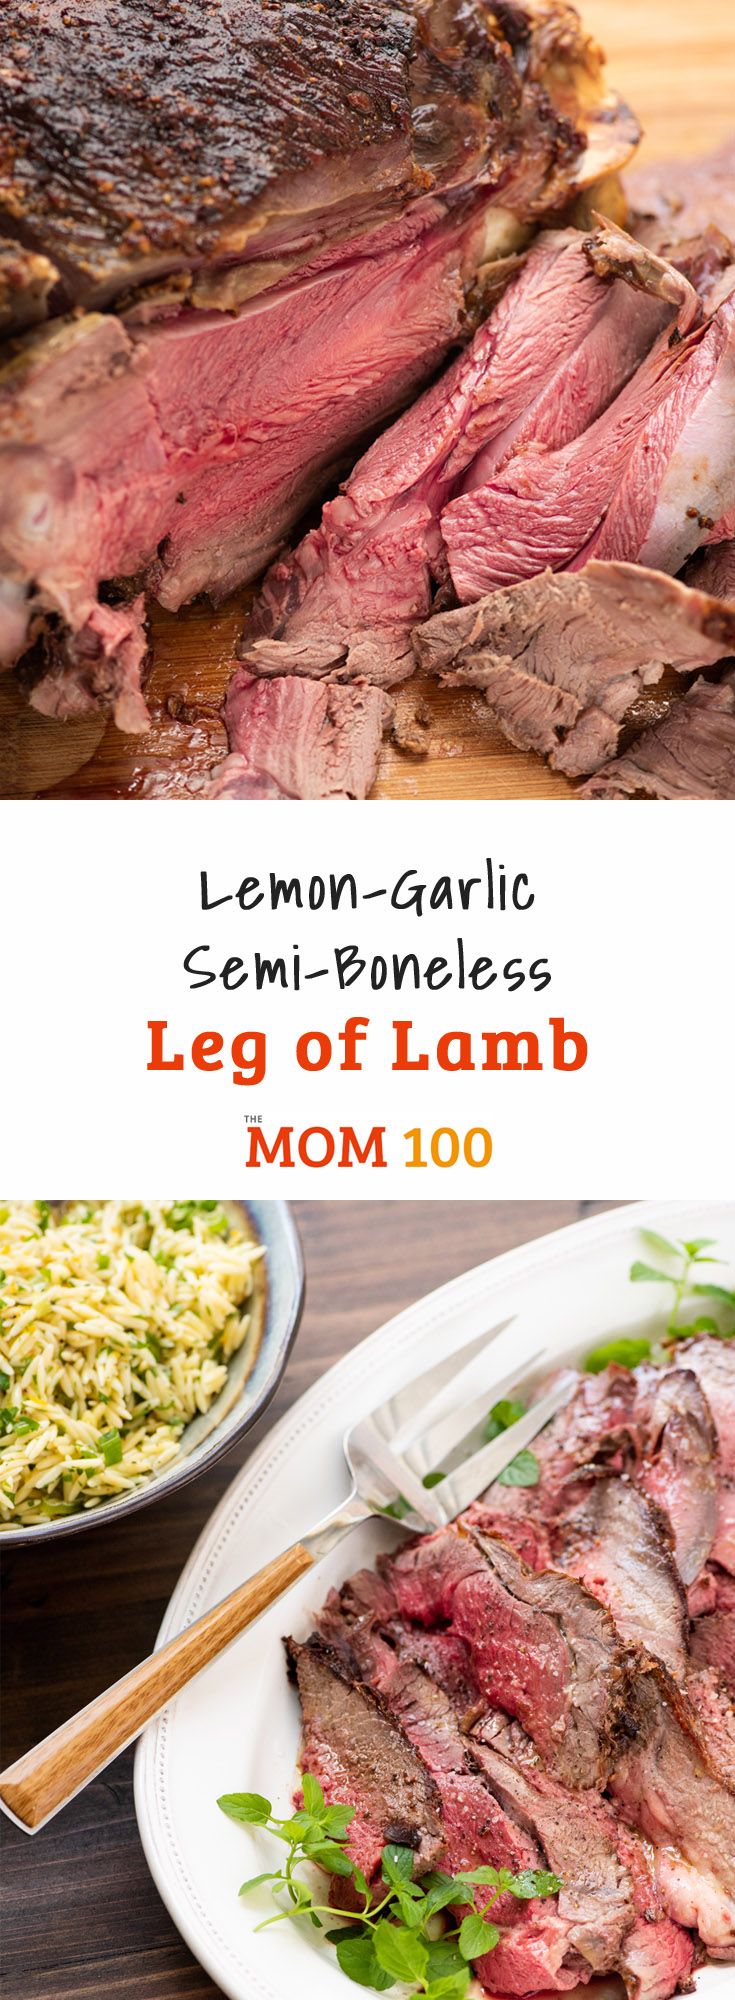 Lemon-Garlic Leg of Lamb: There are few large pieces of meat that my family loves more than a leg of lamb, and few that make more of a statement for company.